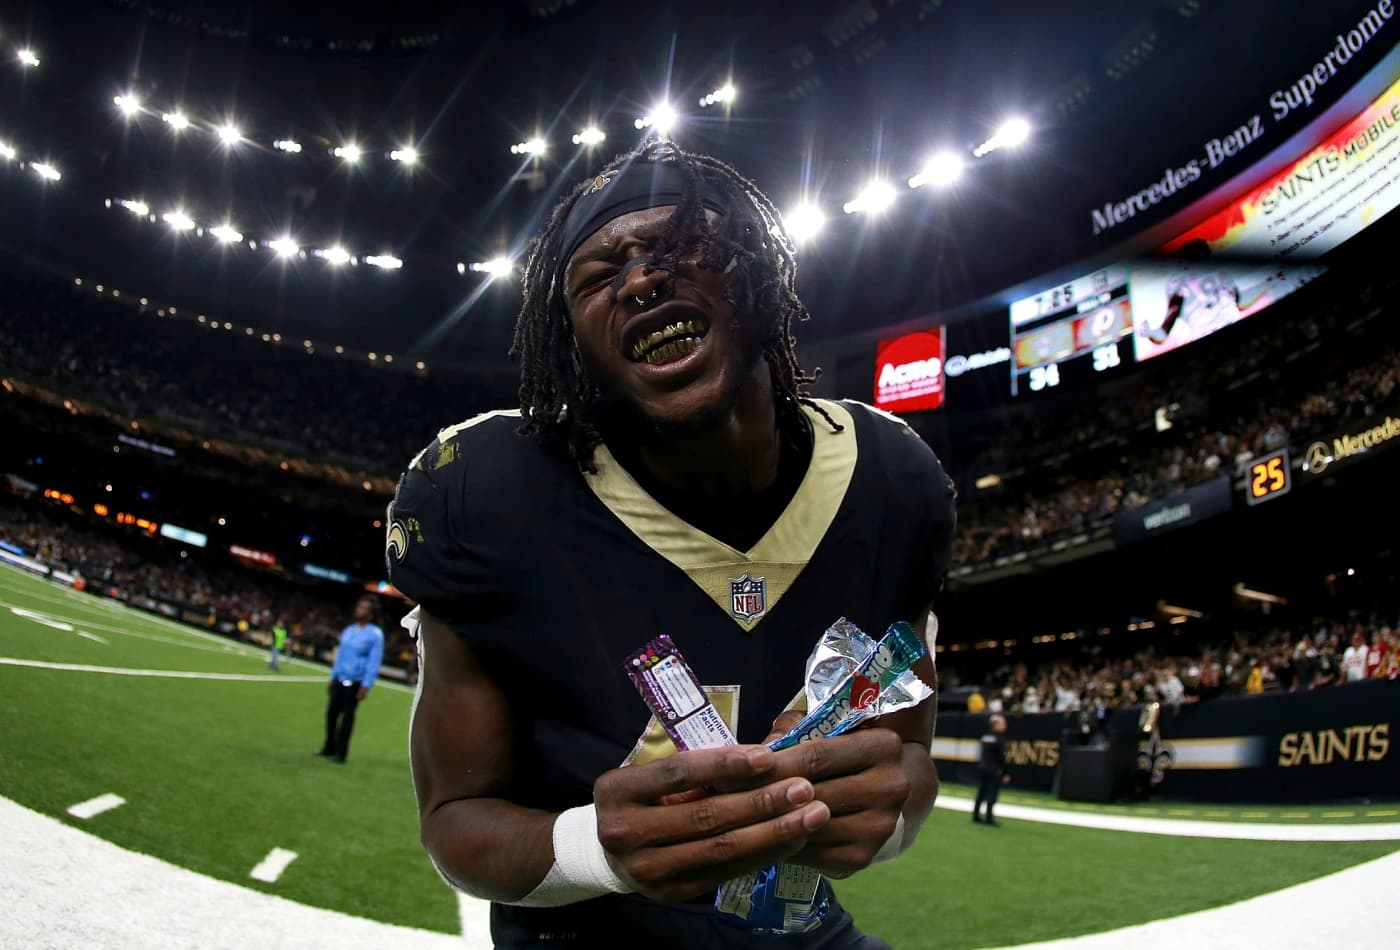 Saints Running Back Alvin Kamara Used His Signing Bonus To